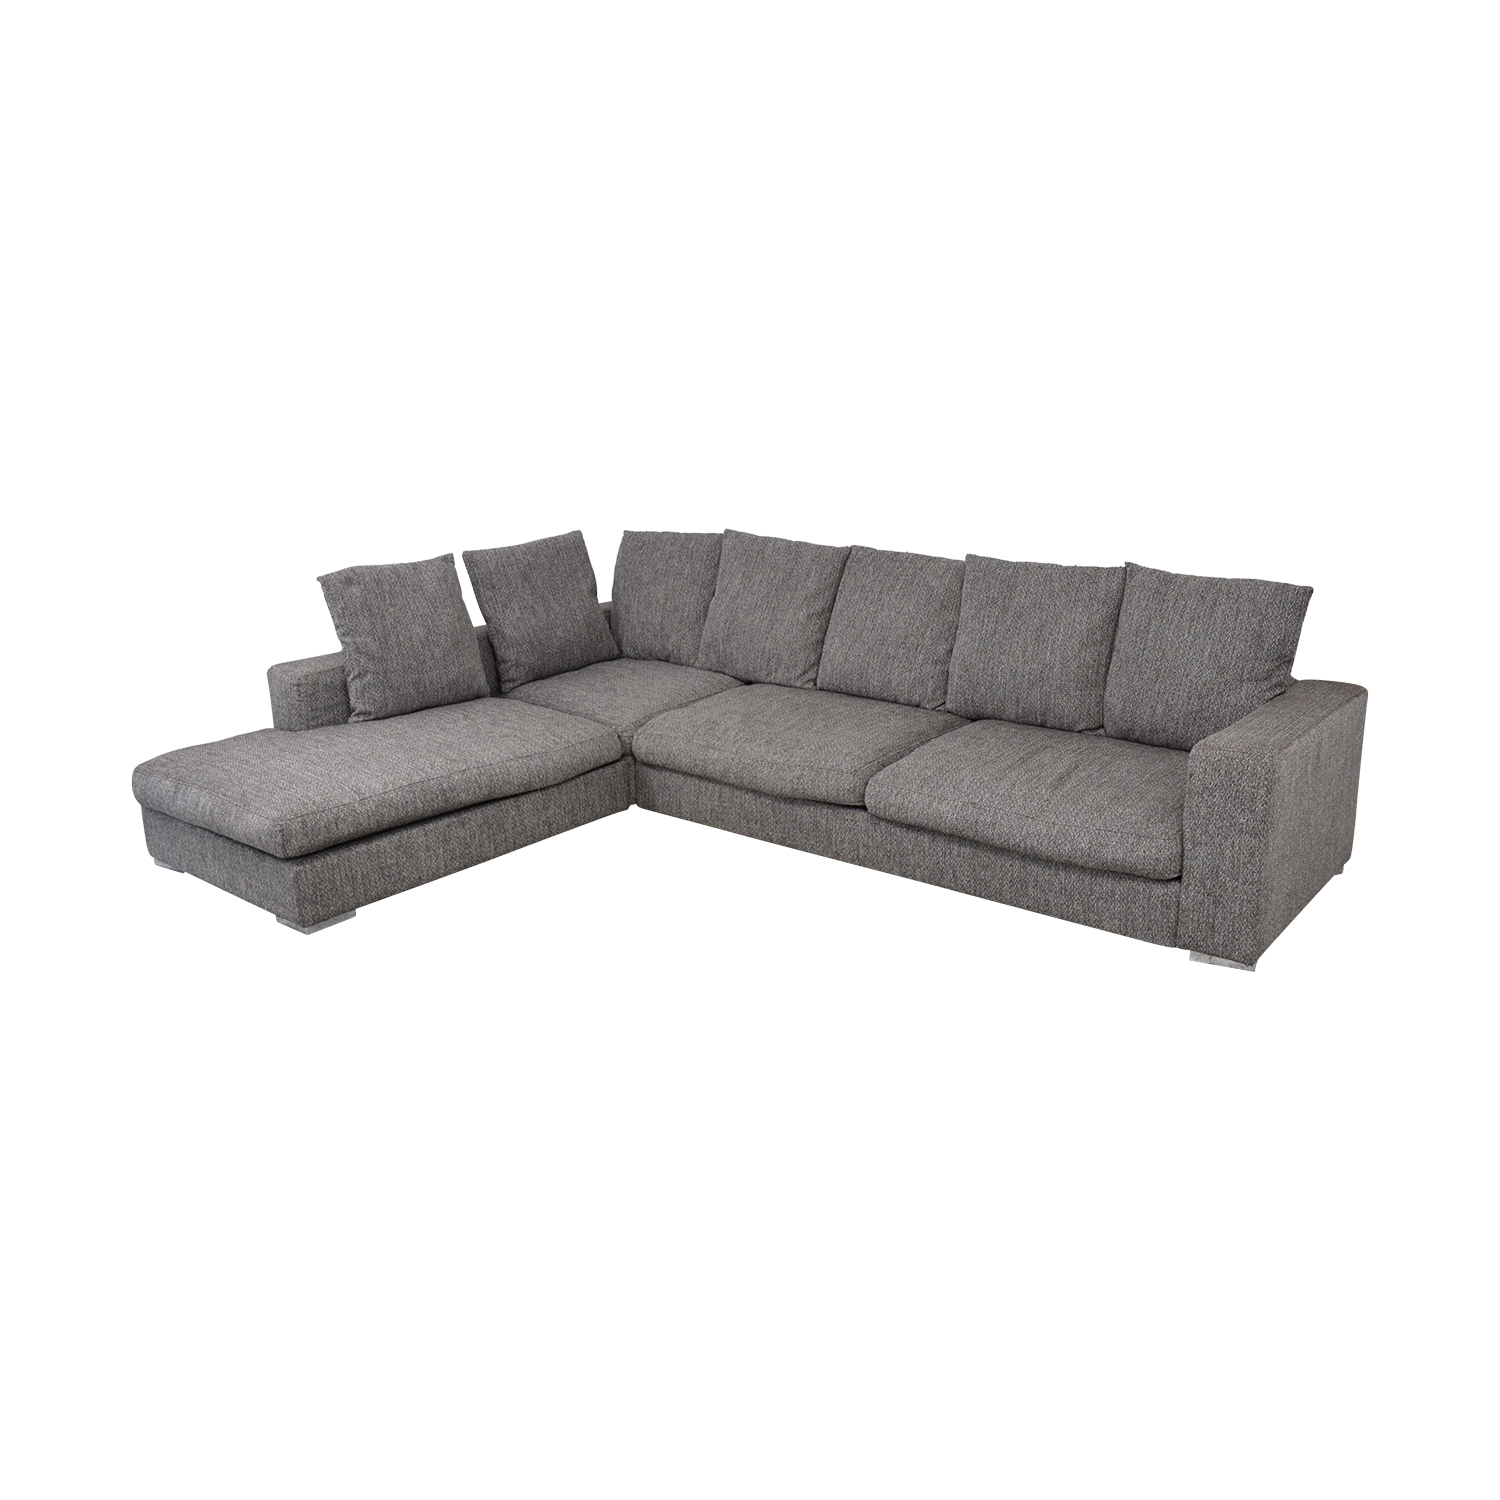 BoConcept BoConcept L-Shaped Modular Sofa with Ottoman nj